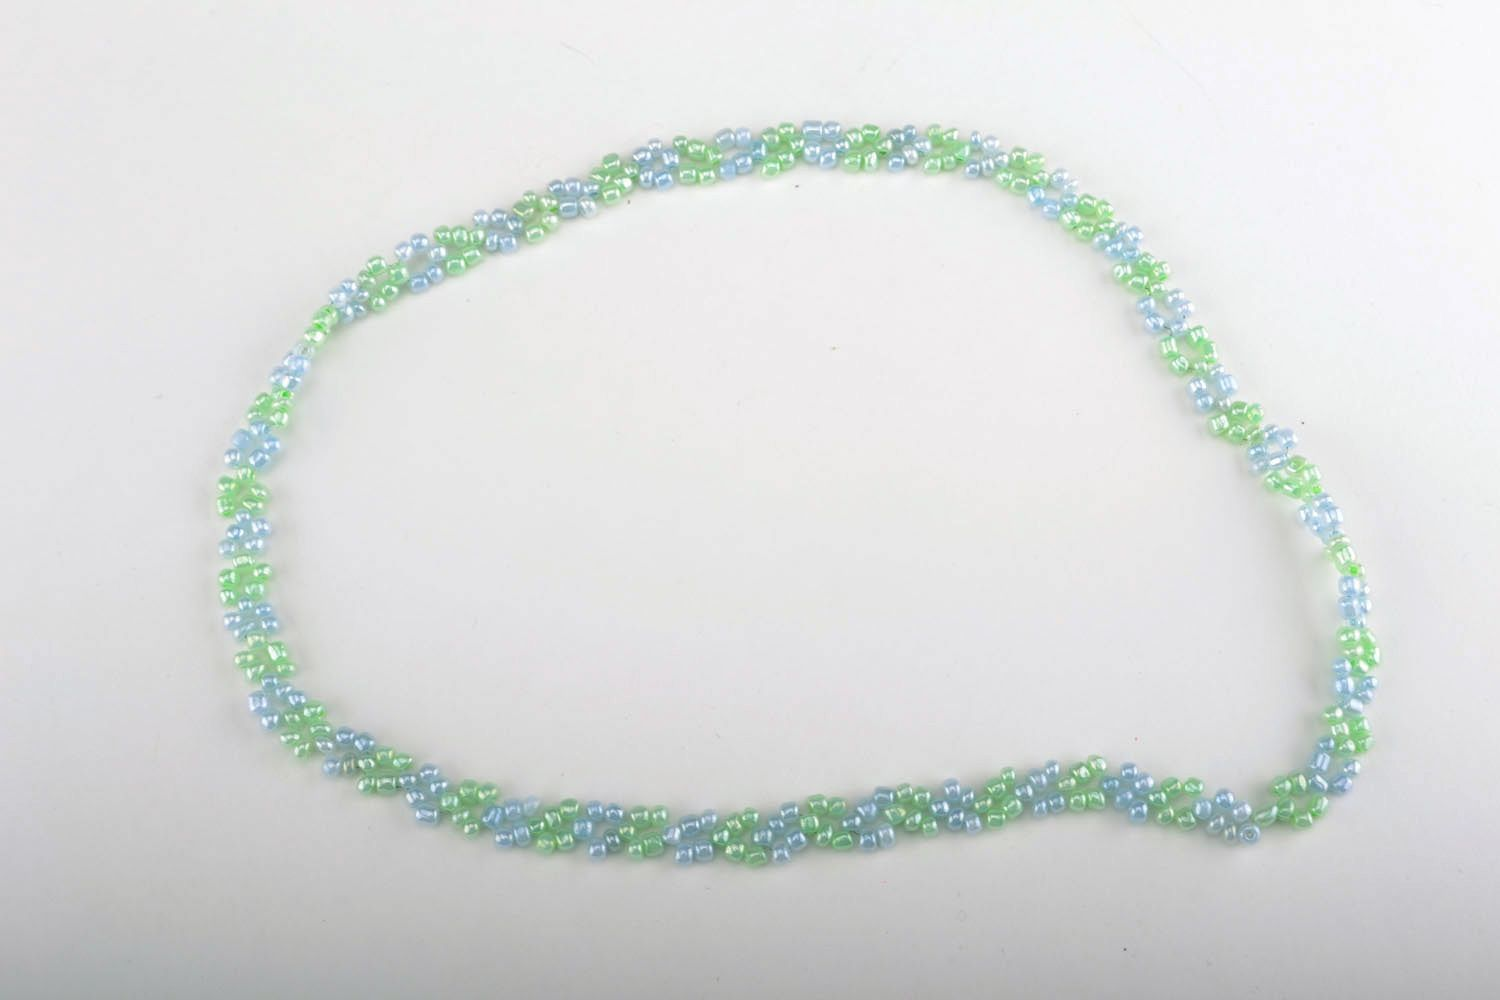 Homemade beaded necklace photo 3